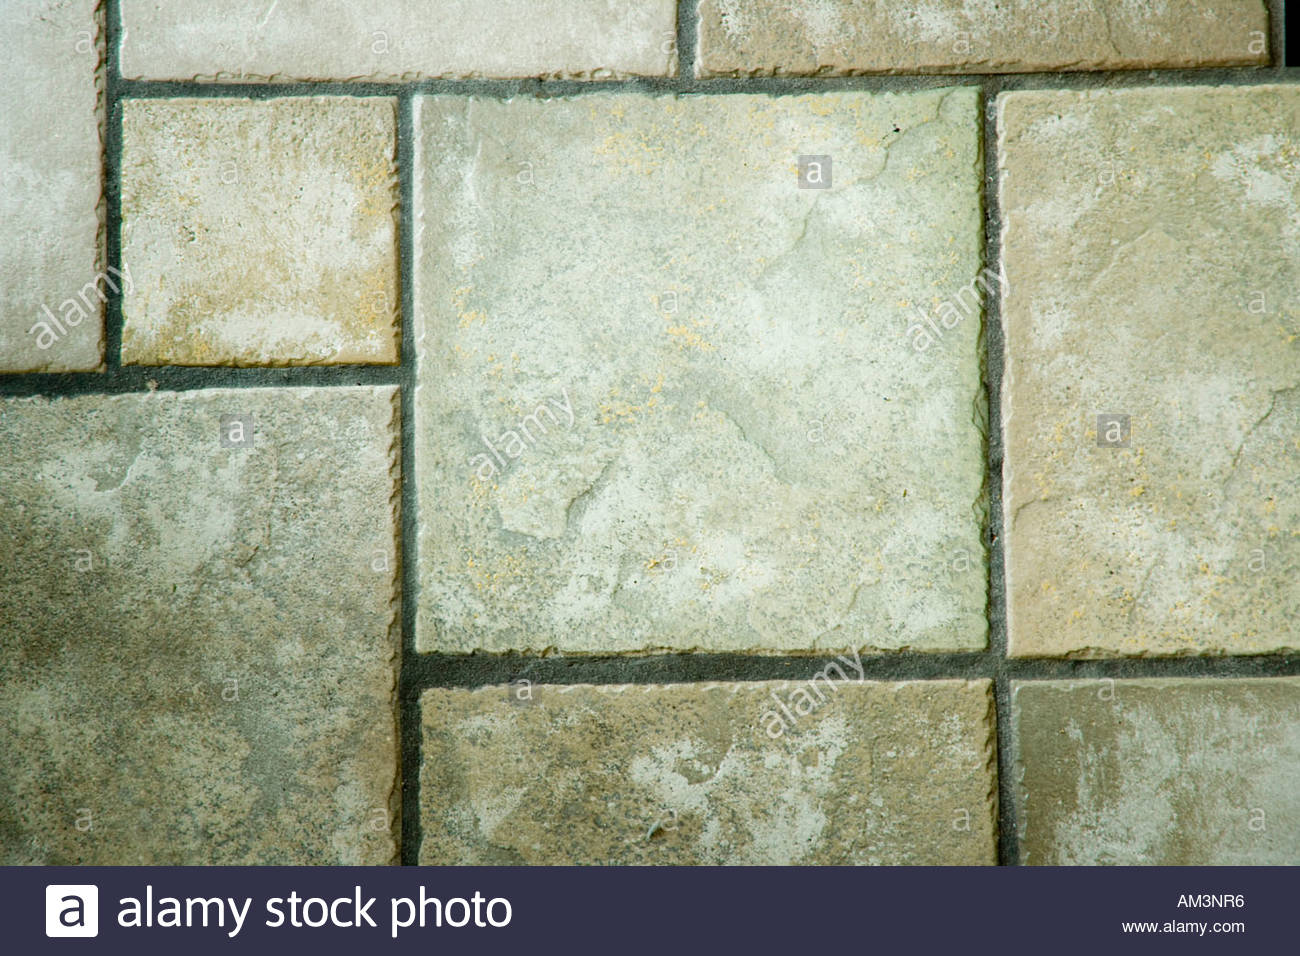 Ceramic tile no grout lines